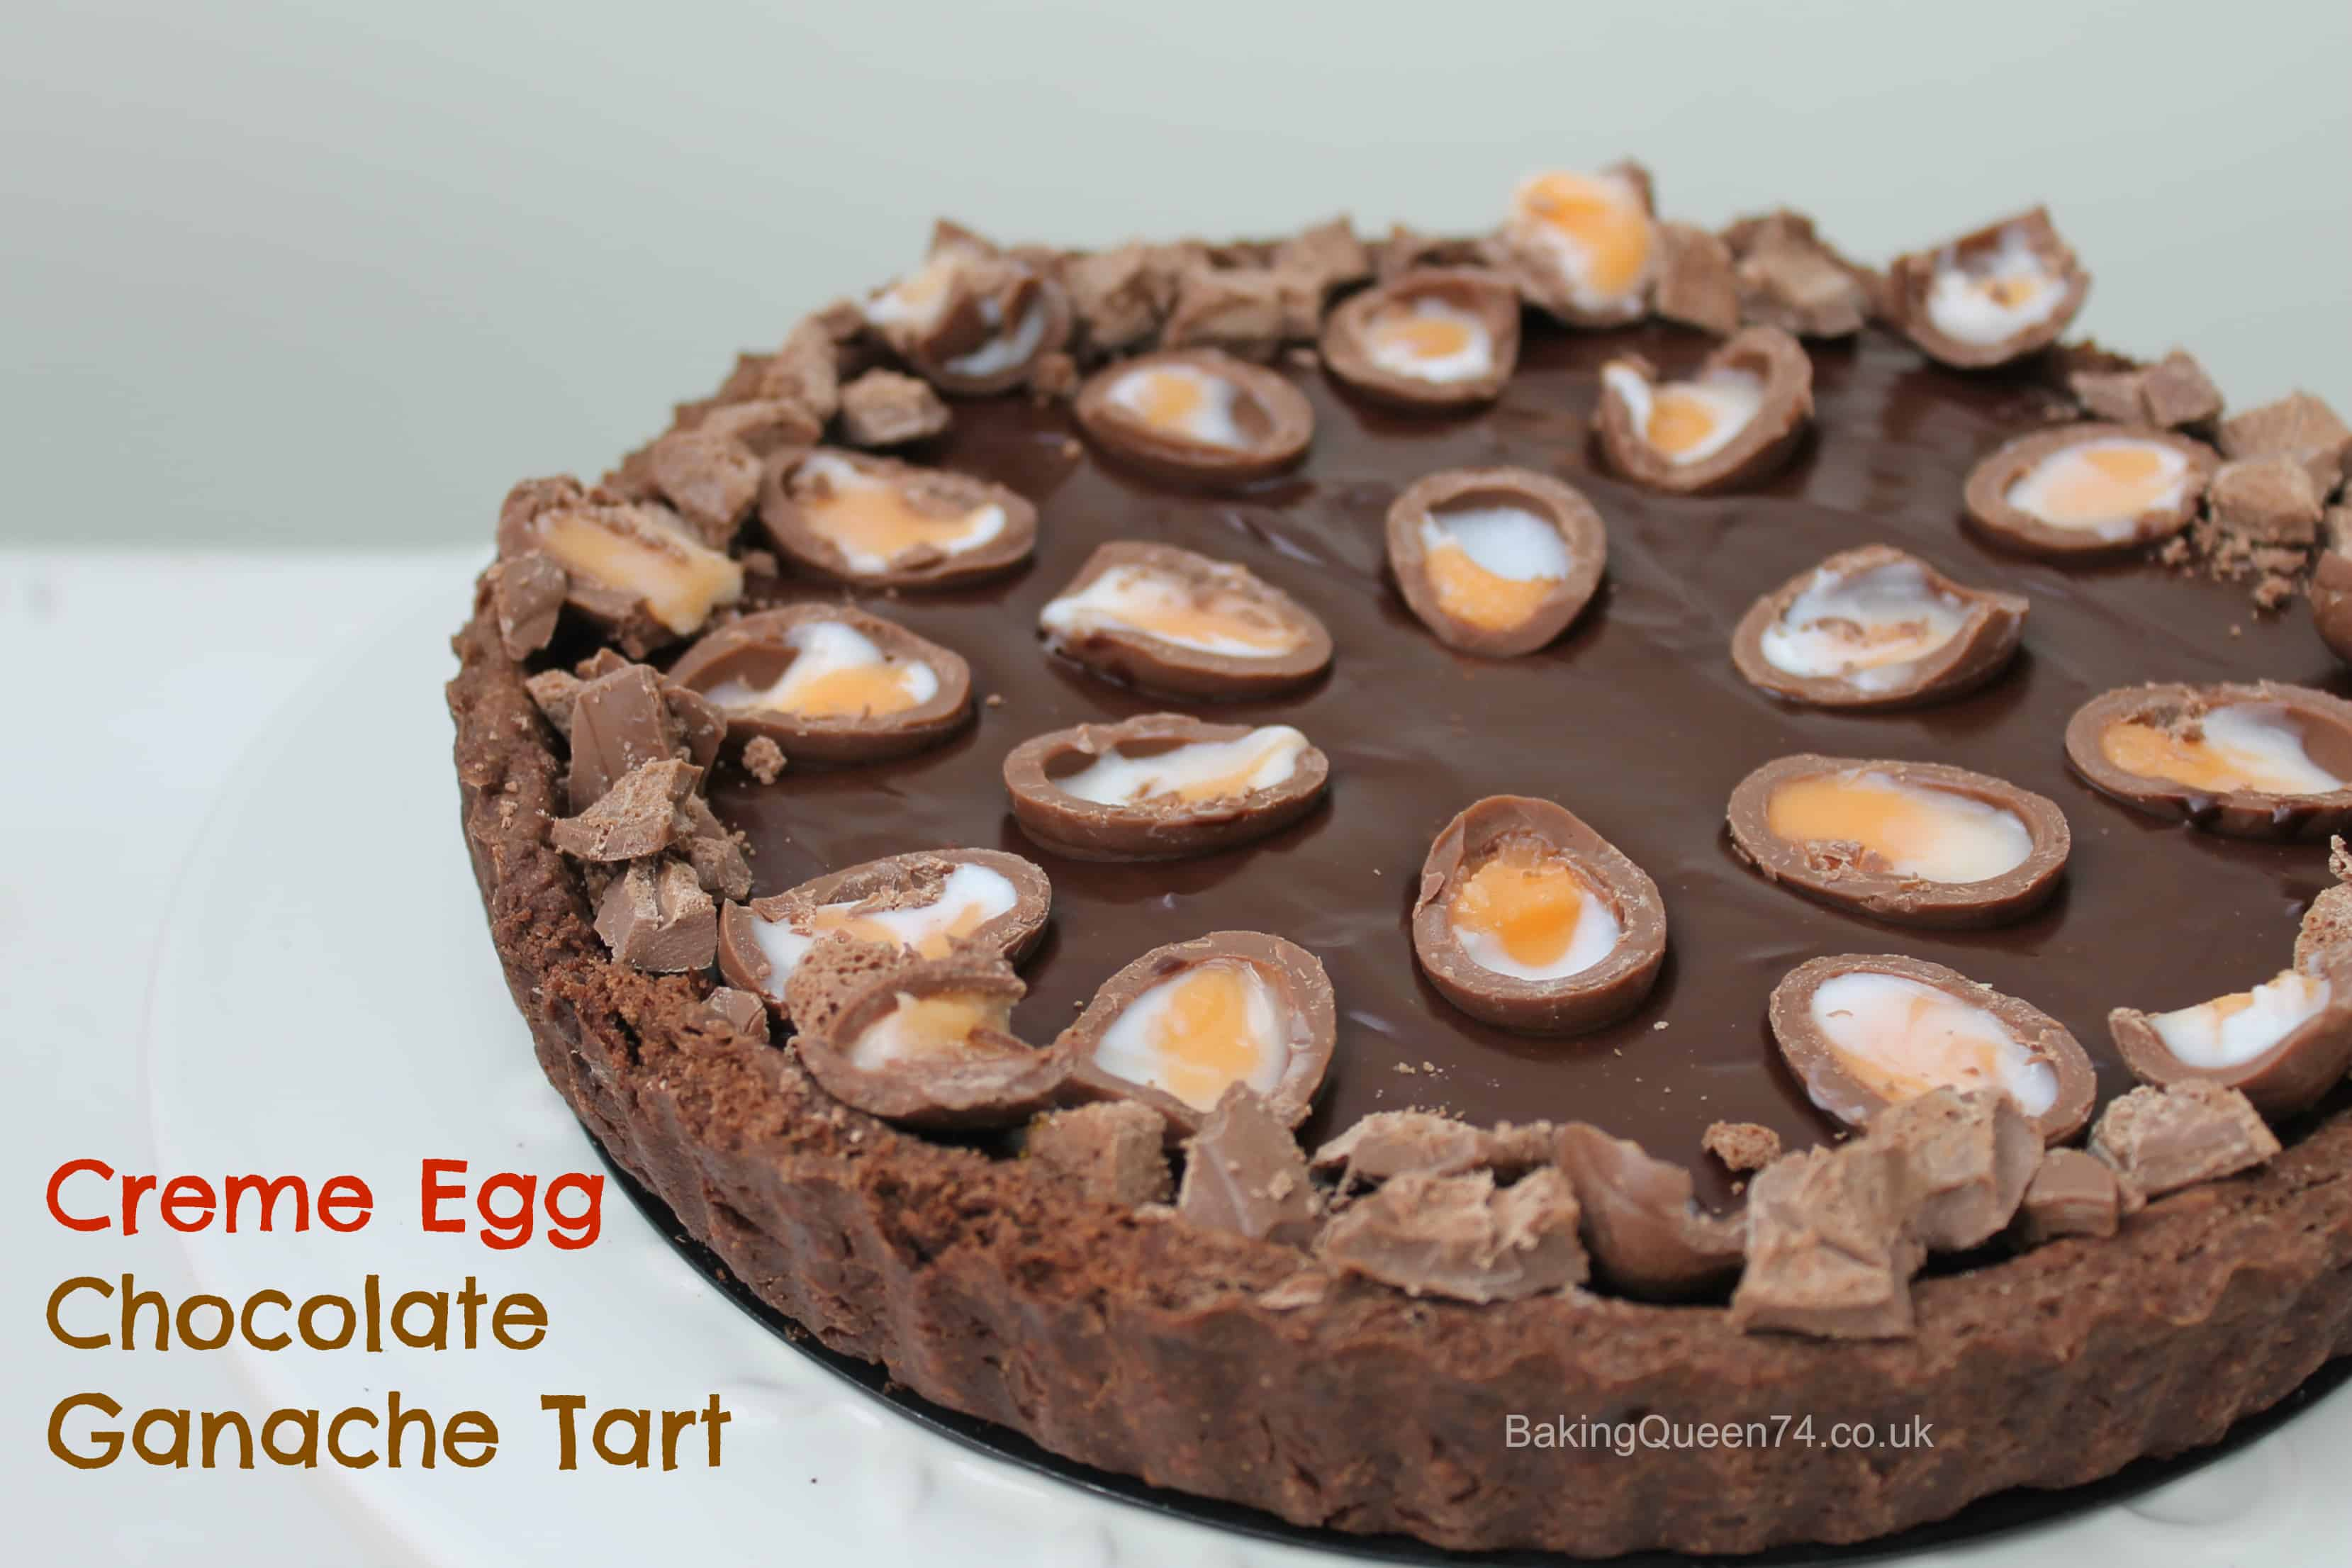 ... Egg Chocolate Ganache Tart this Easter for a rich chocolatey treat